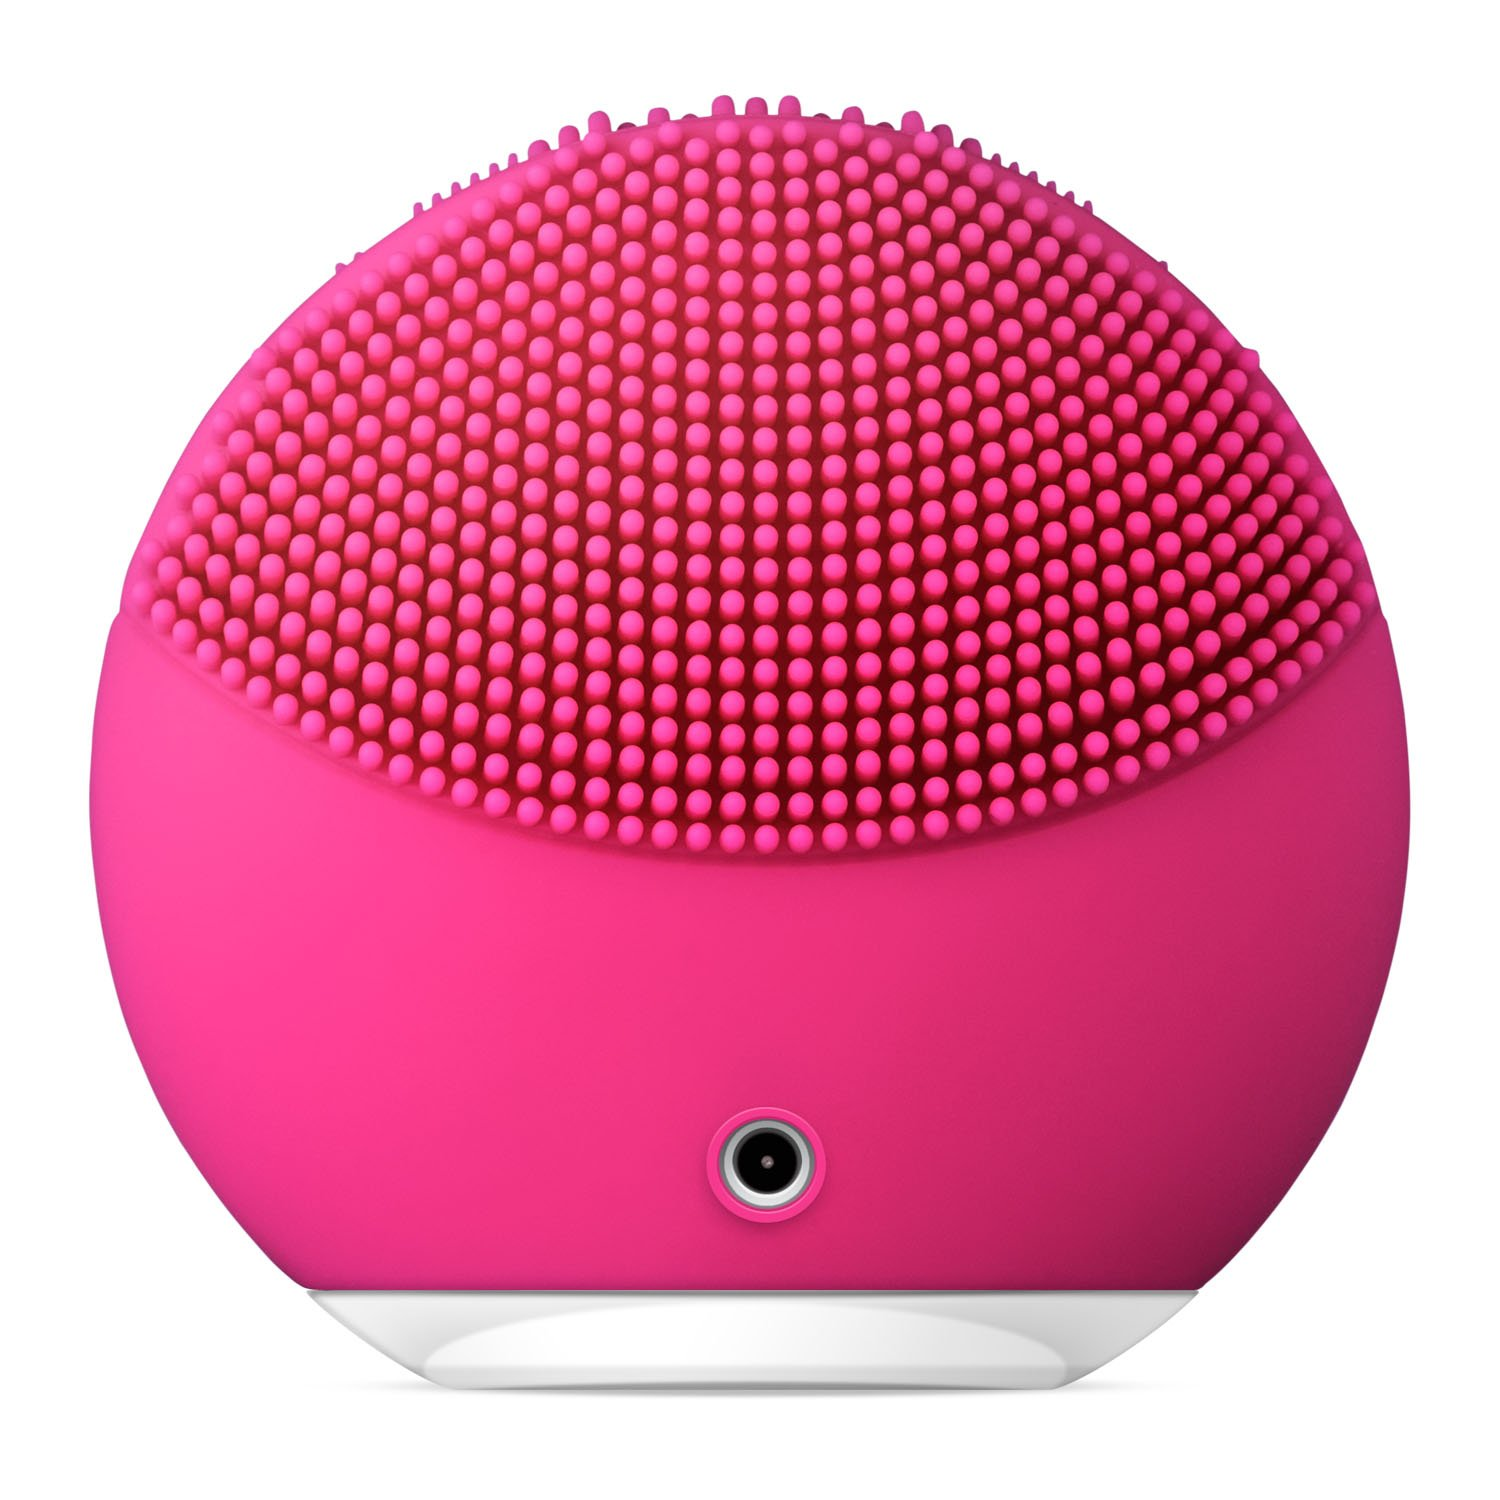 FOREO LUNA mini 2 Facial Cleansing Brush, Gentle Exfoliation and Sonic Cleansing for All Skin Types, Fuchsia by FOREO (Image #3)